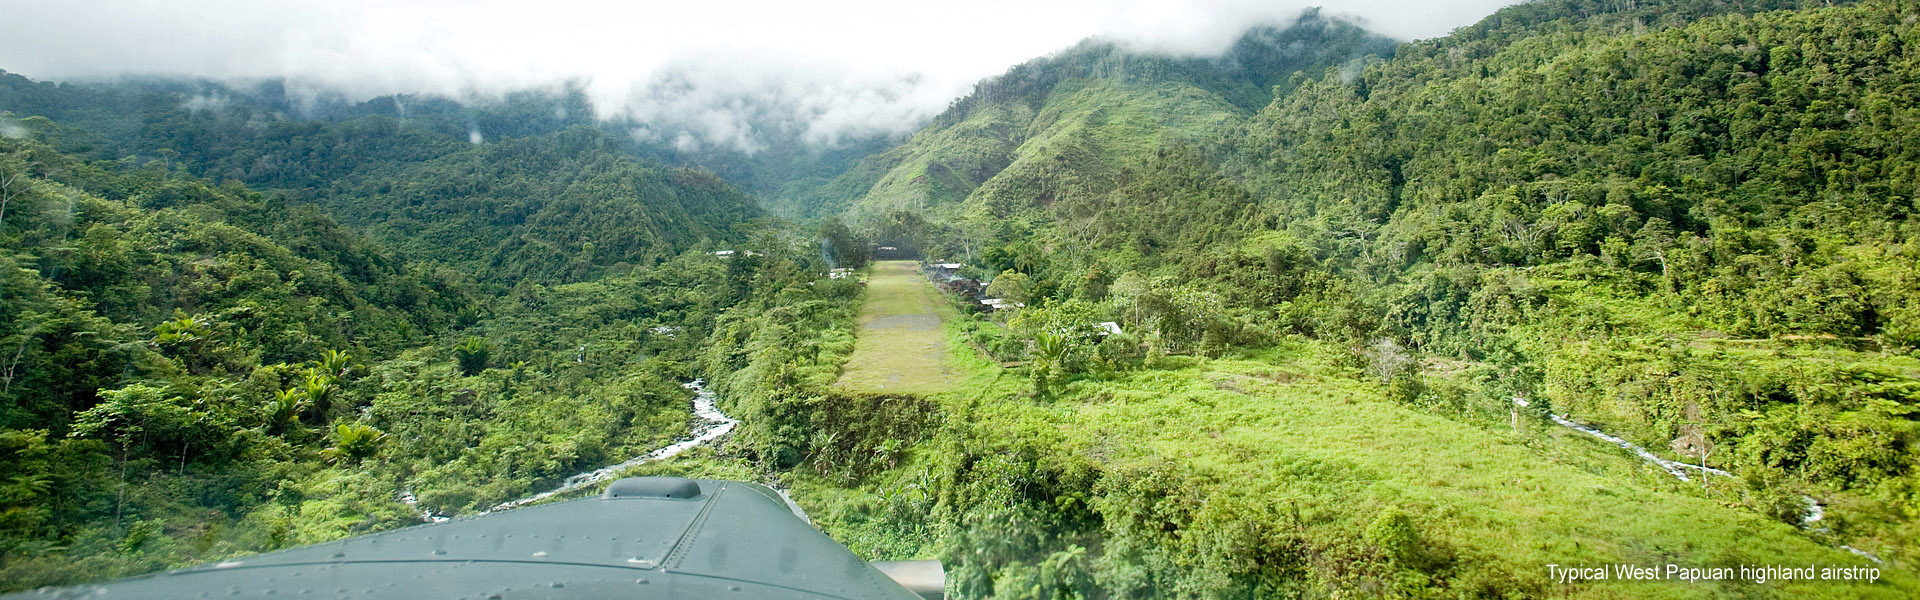 A typical highland airstrip in West Papua, Indonesia